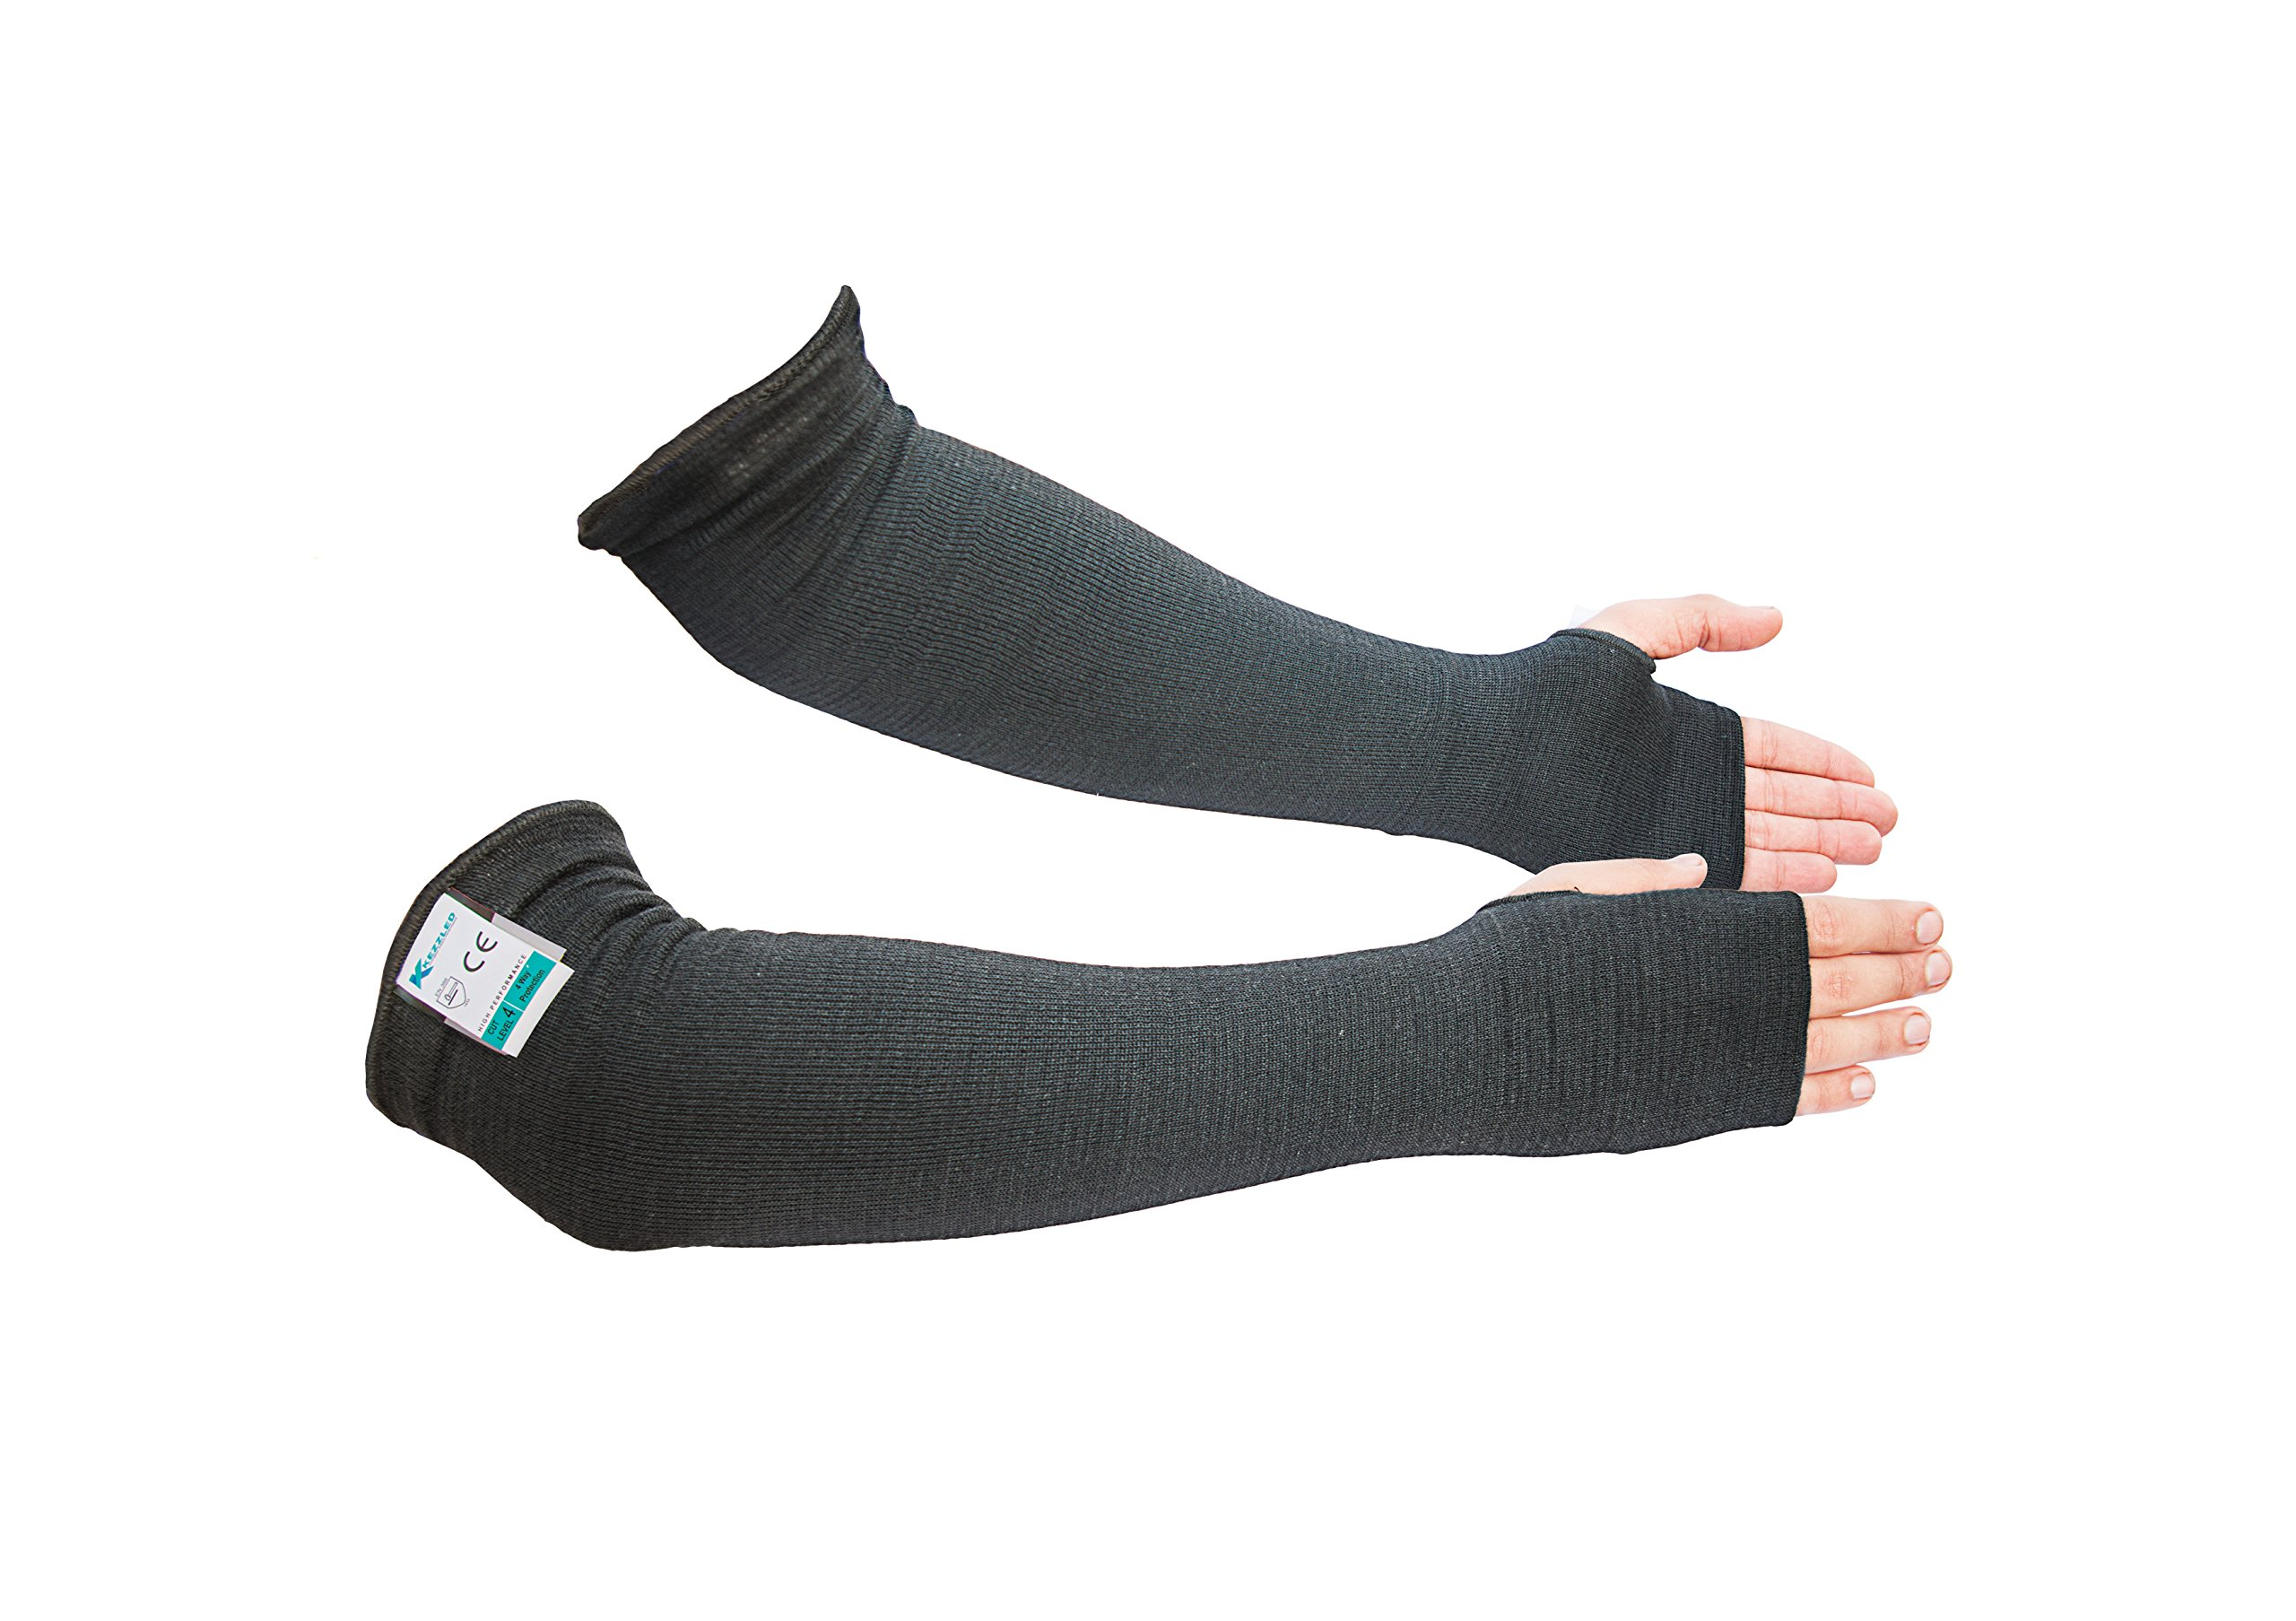 Kevlar EN388 Double Ply Cut-4, Tear-3, Puncture-3 18-Inch Knit Sleeve with Thumb Slot (Black)